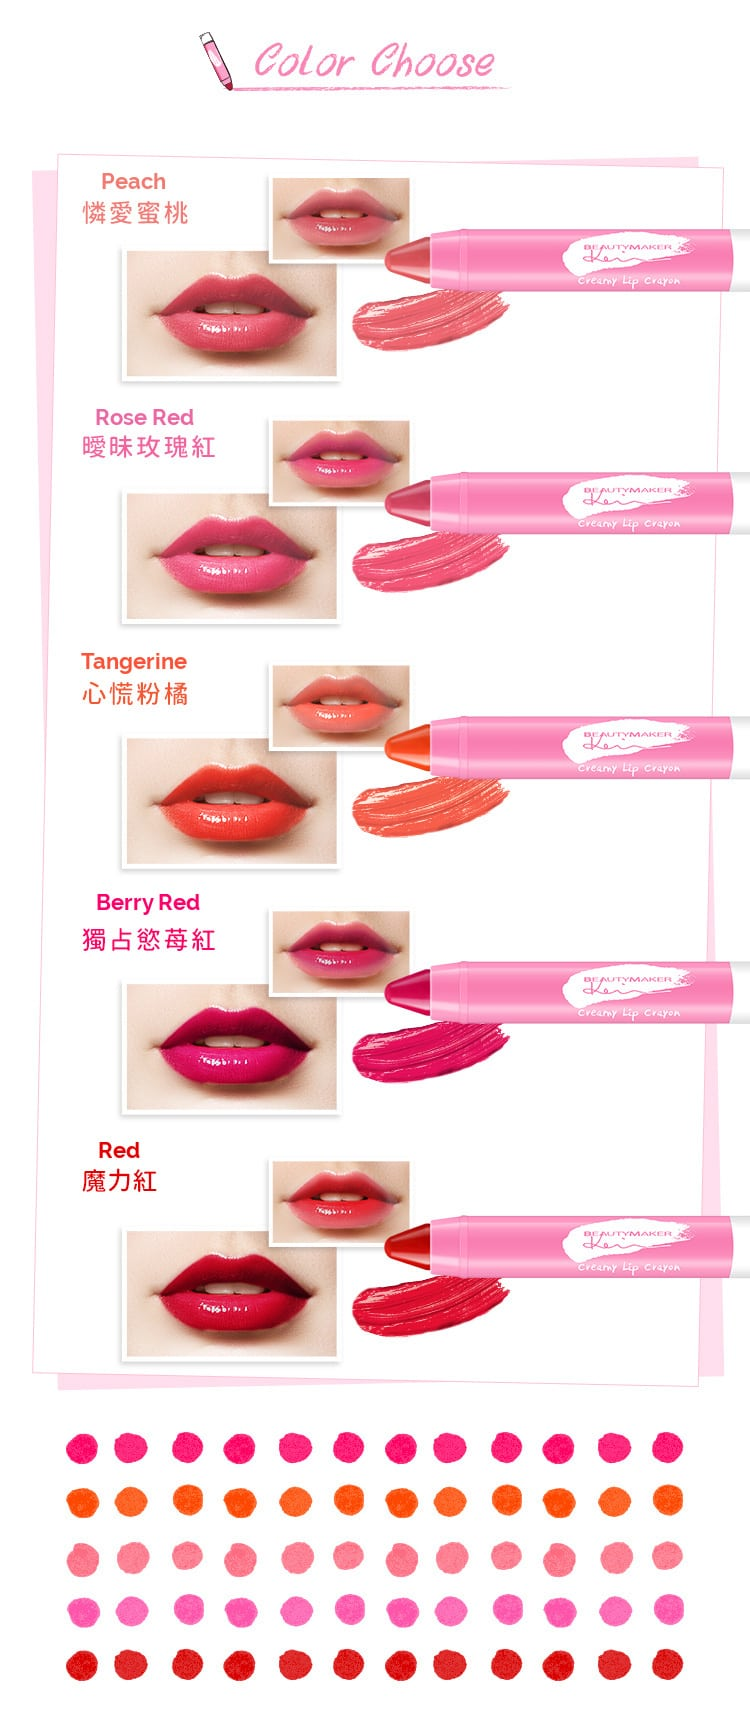 Beautymaker Creamy Lip Crayon - Product Colors